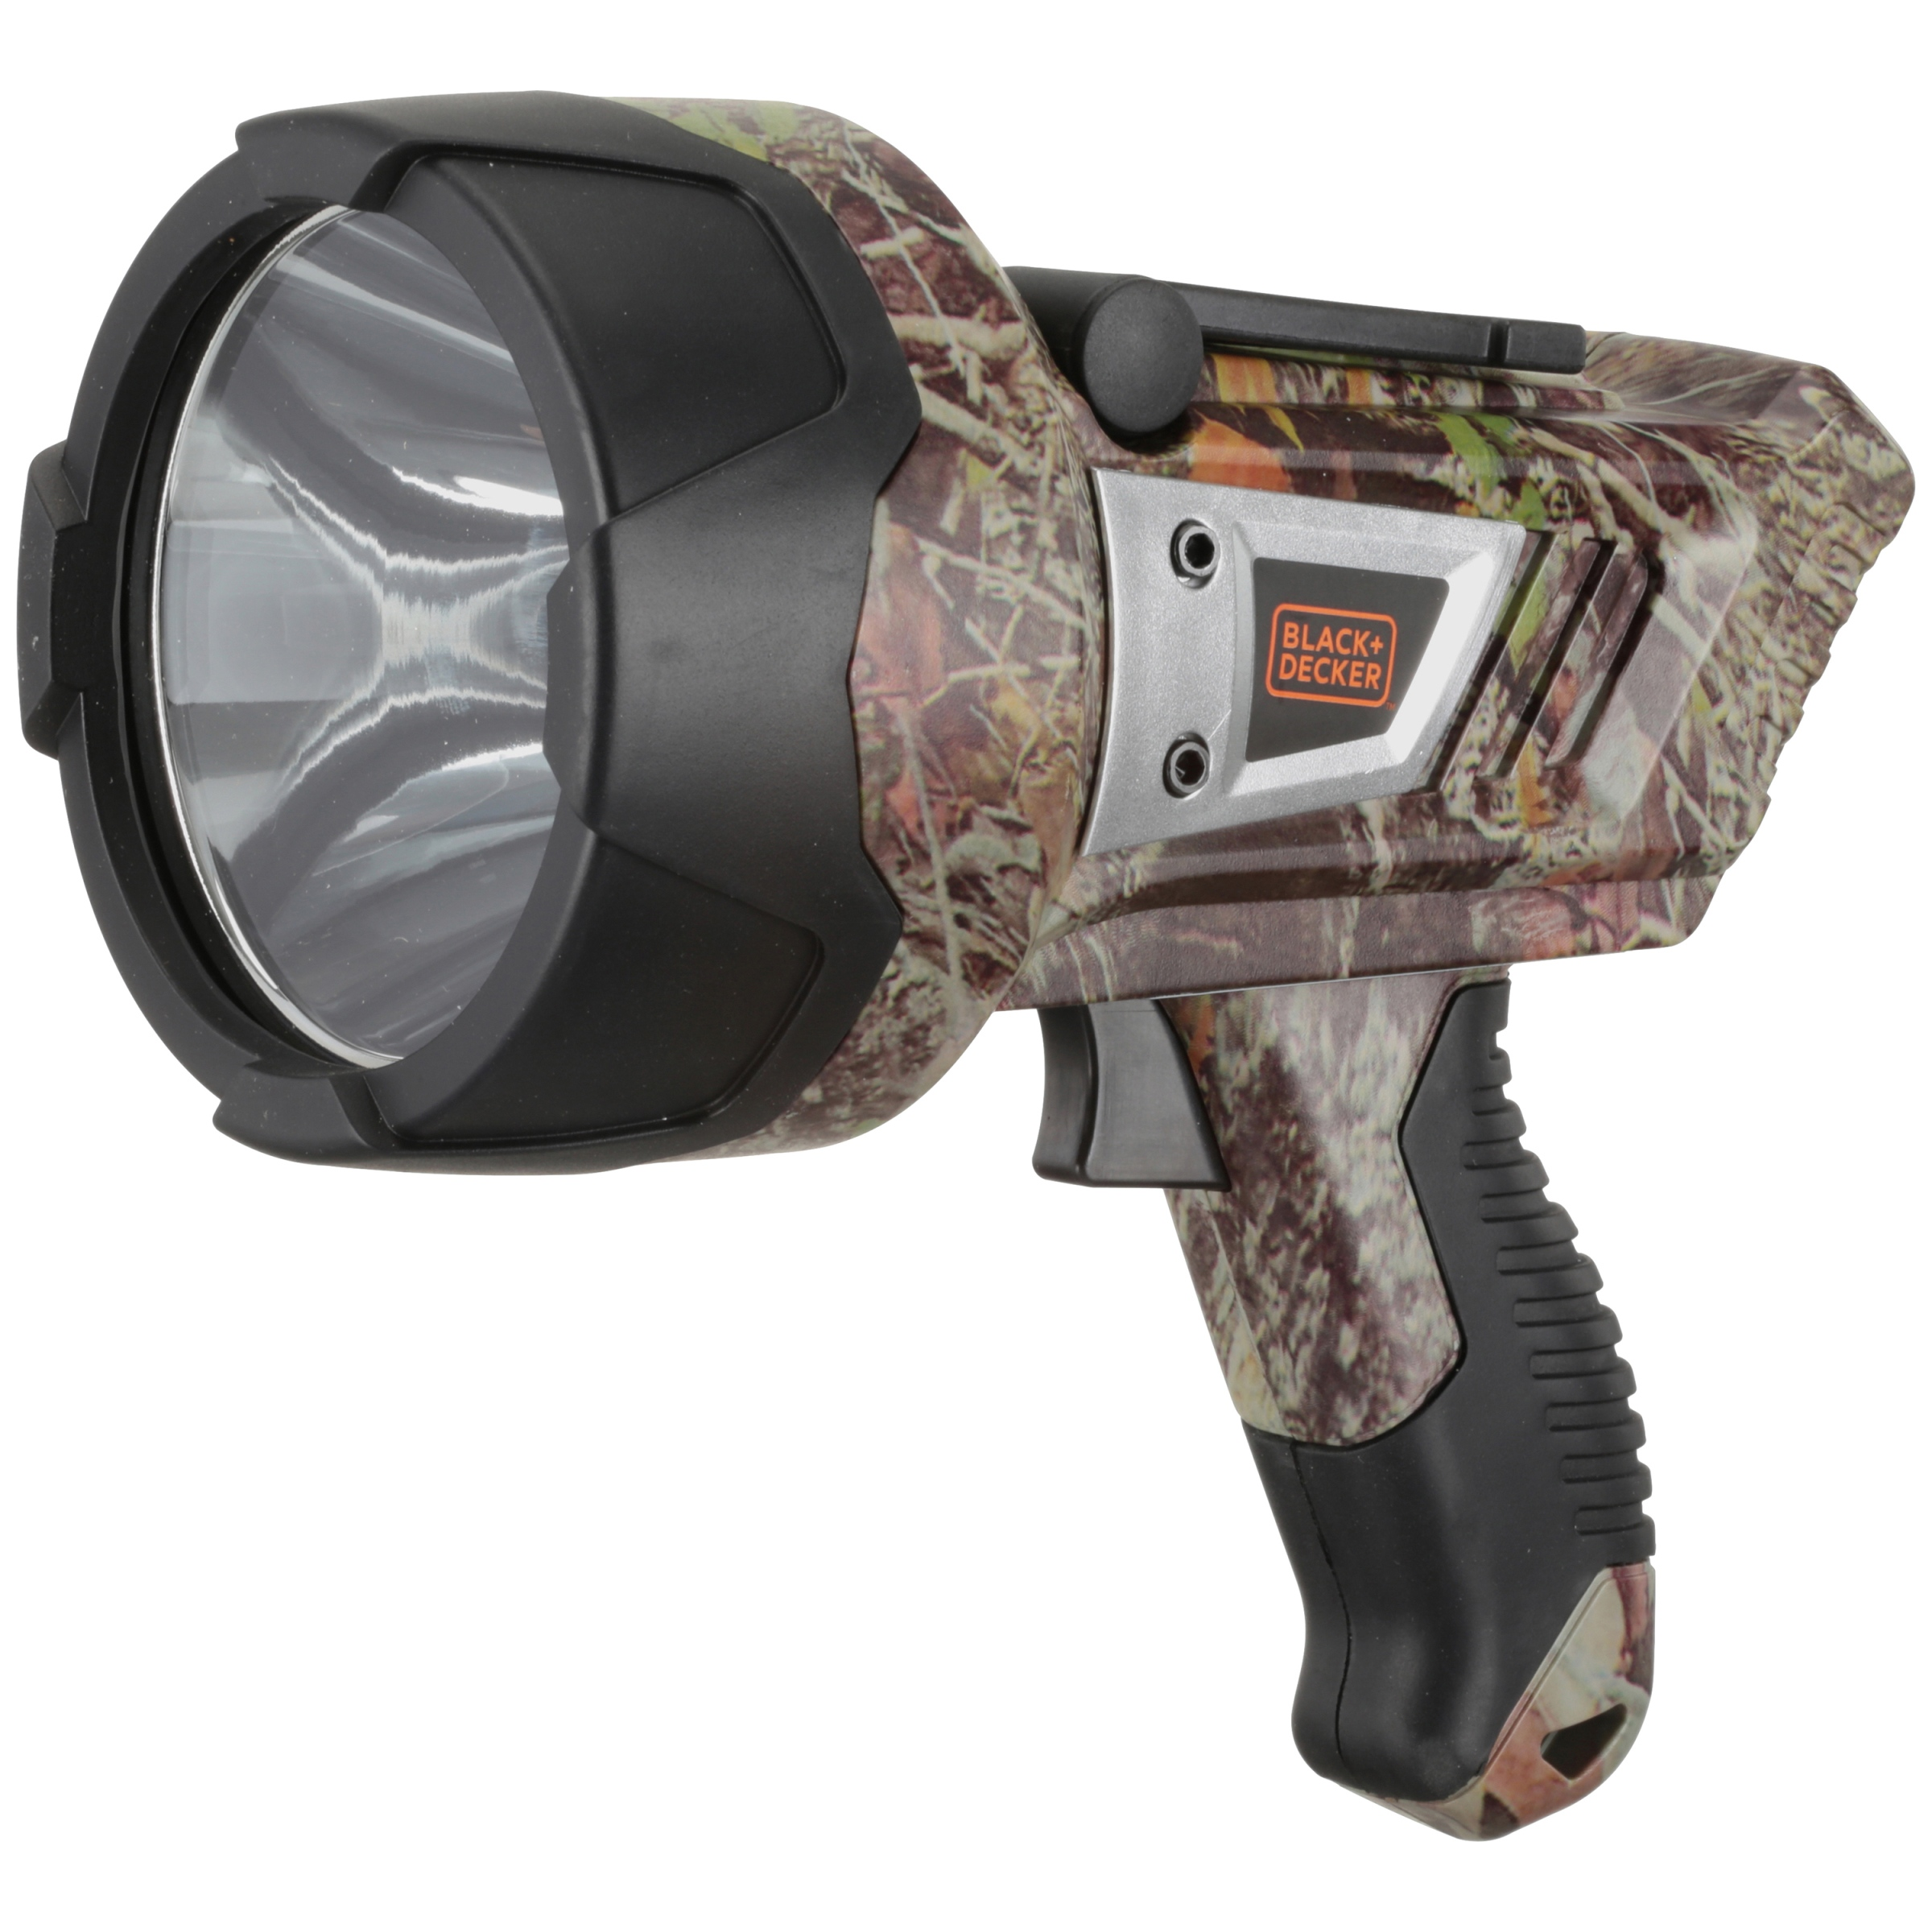 Black + Decker 5 Watt LED + USB Li-Ion Rechargeable Spotlight Peg by Baccus Global LLC